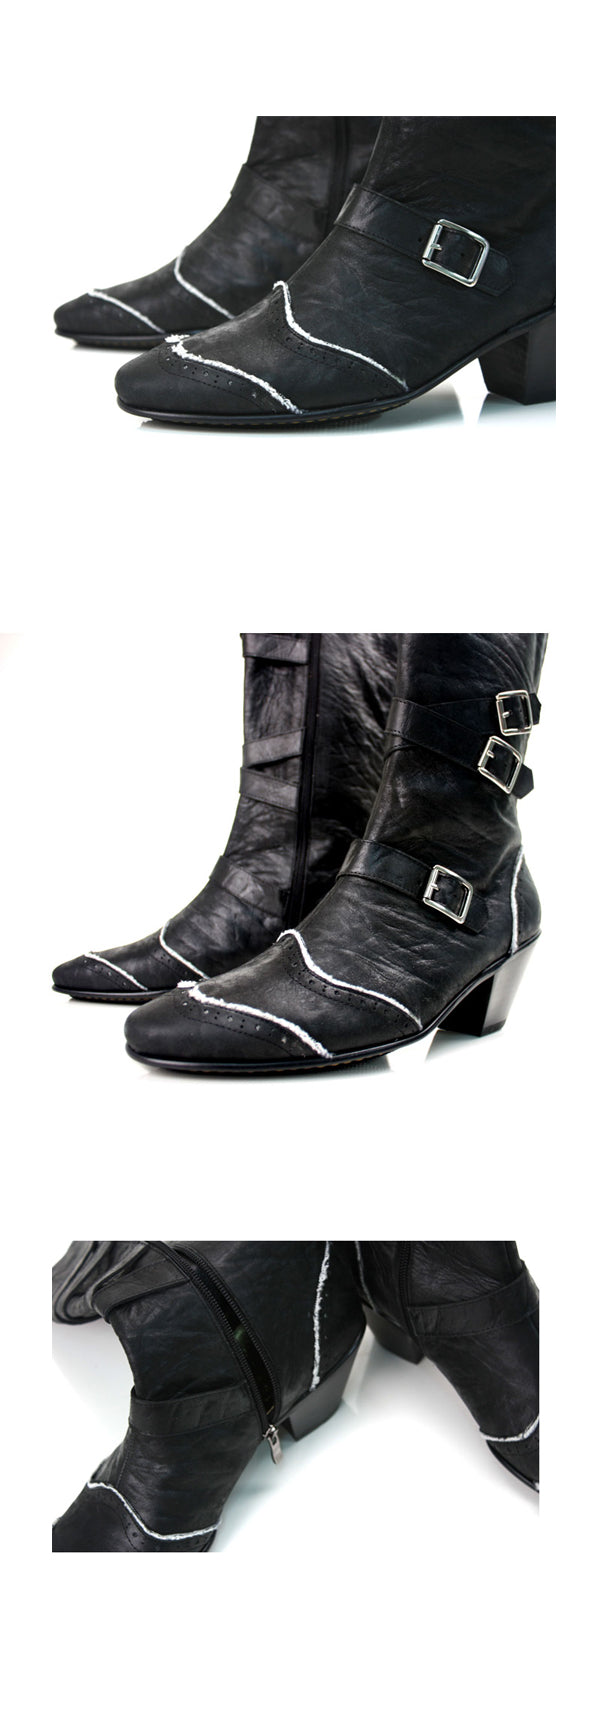 Premium Handmade Leather Shoes Riding Ankle Boots for Men Korea Craft